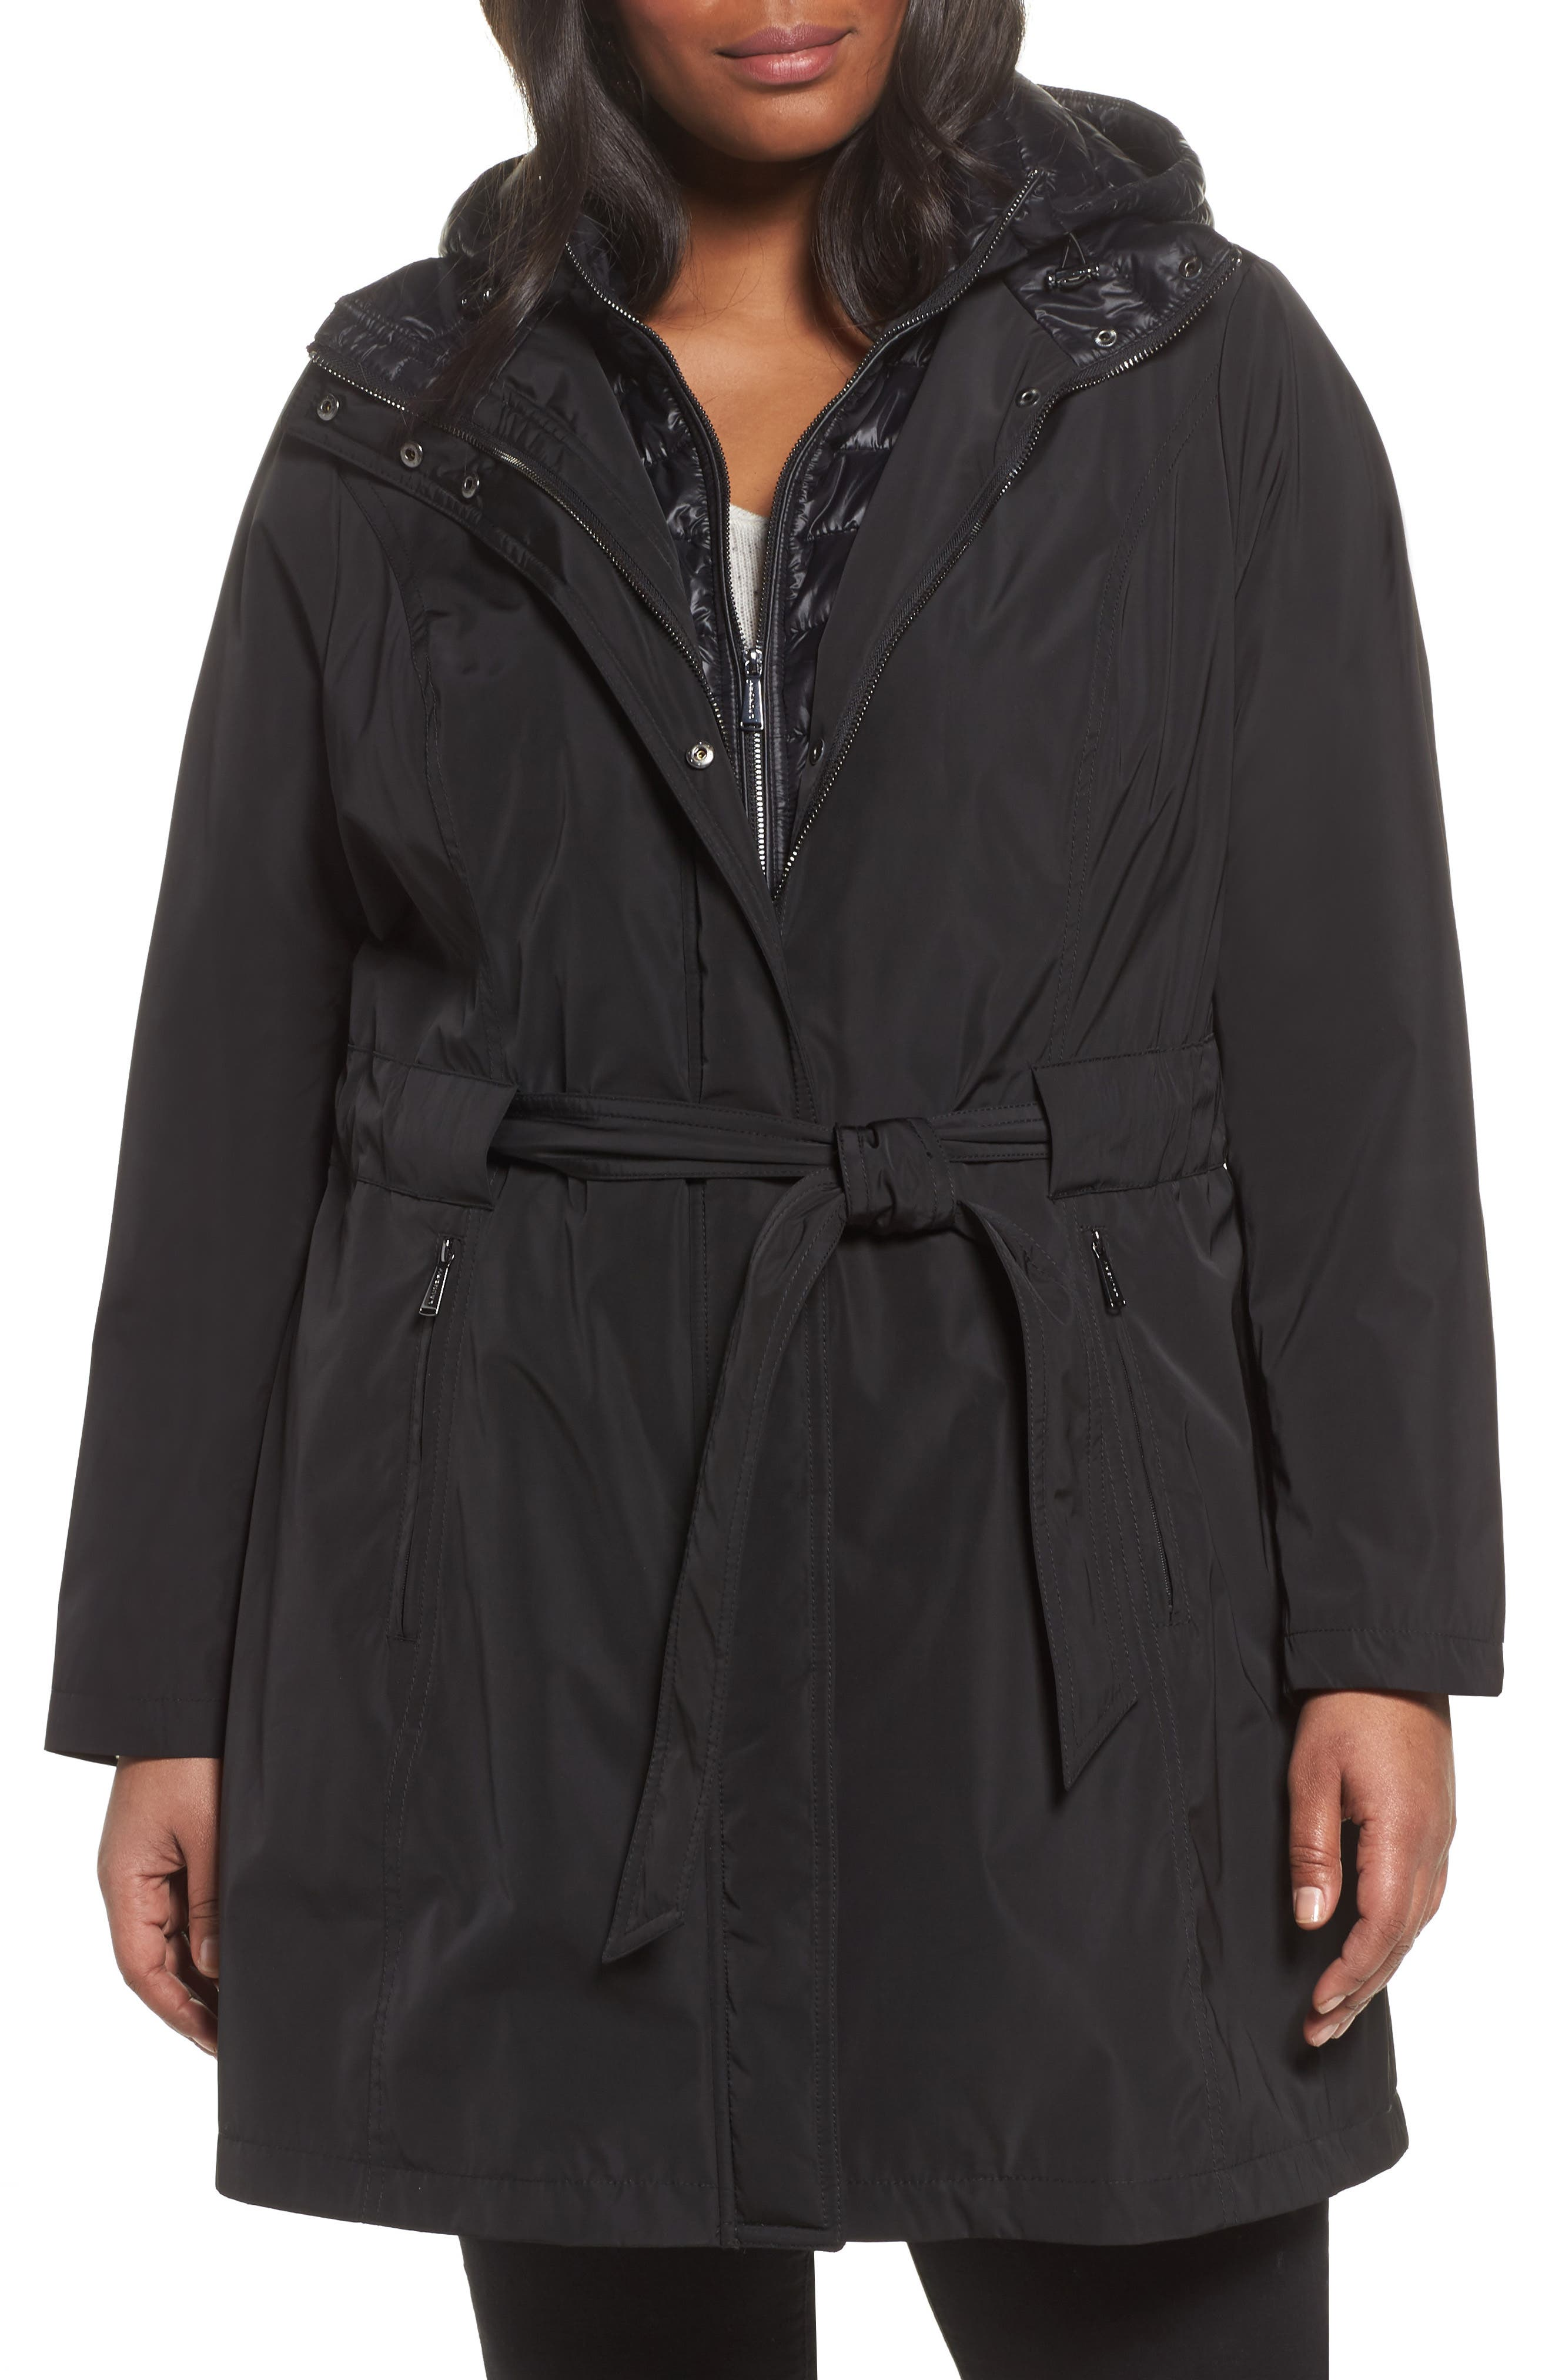 Alternate Image 1 Selected - Laundry by Shelli Segal Water Resistant Hooded Coat with Puffer Bib Inset (Plus Size)